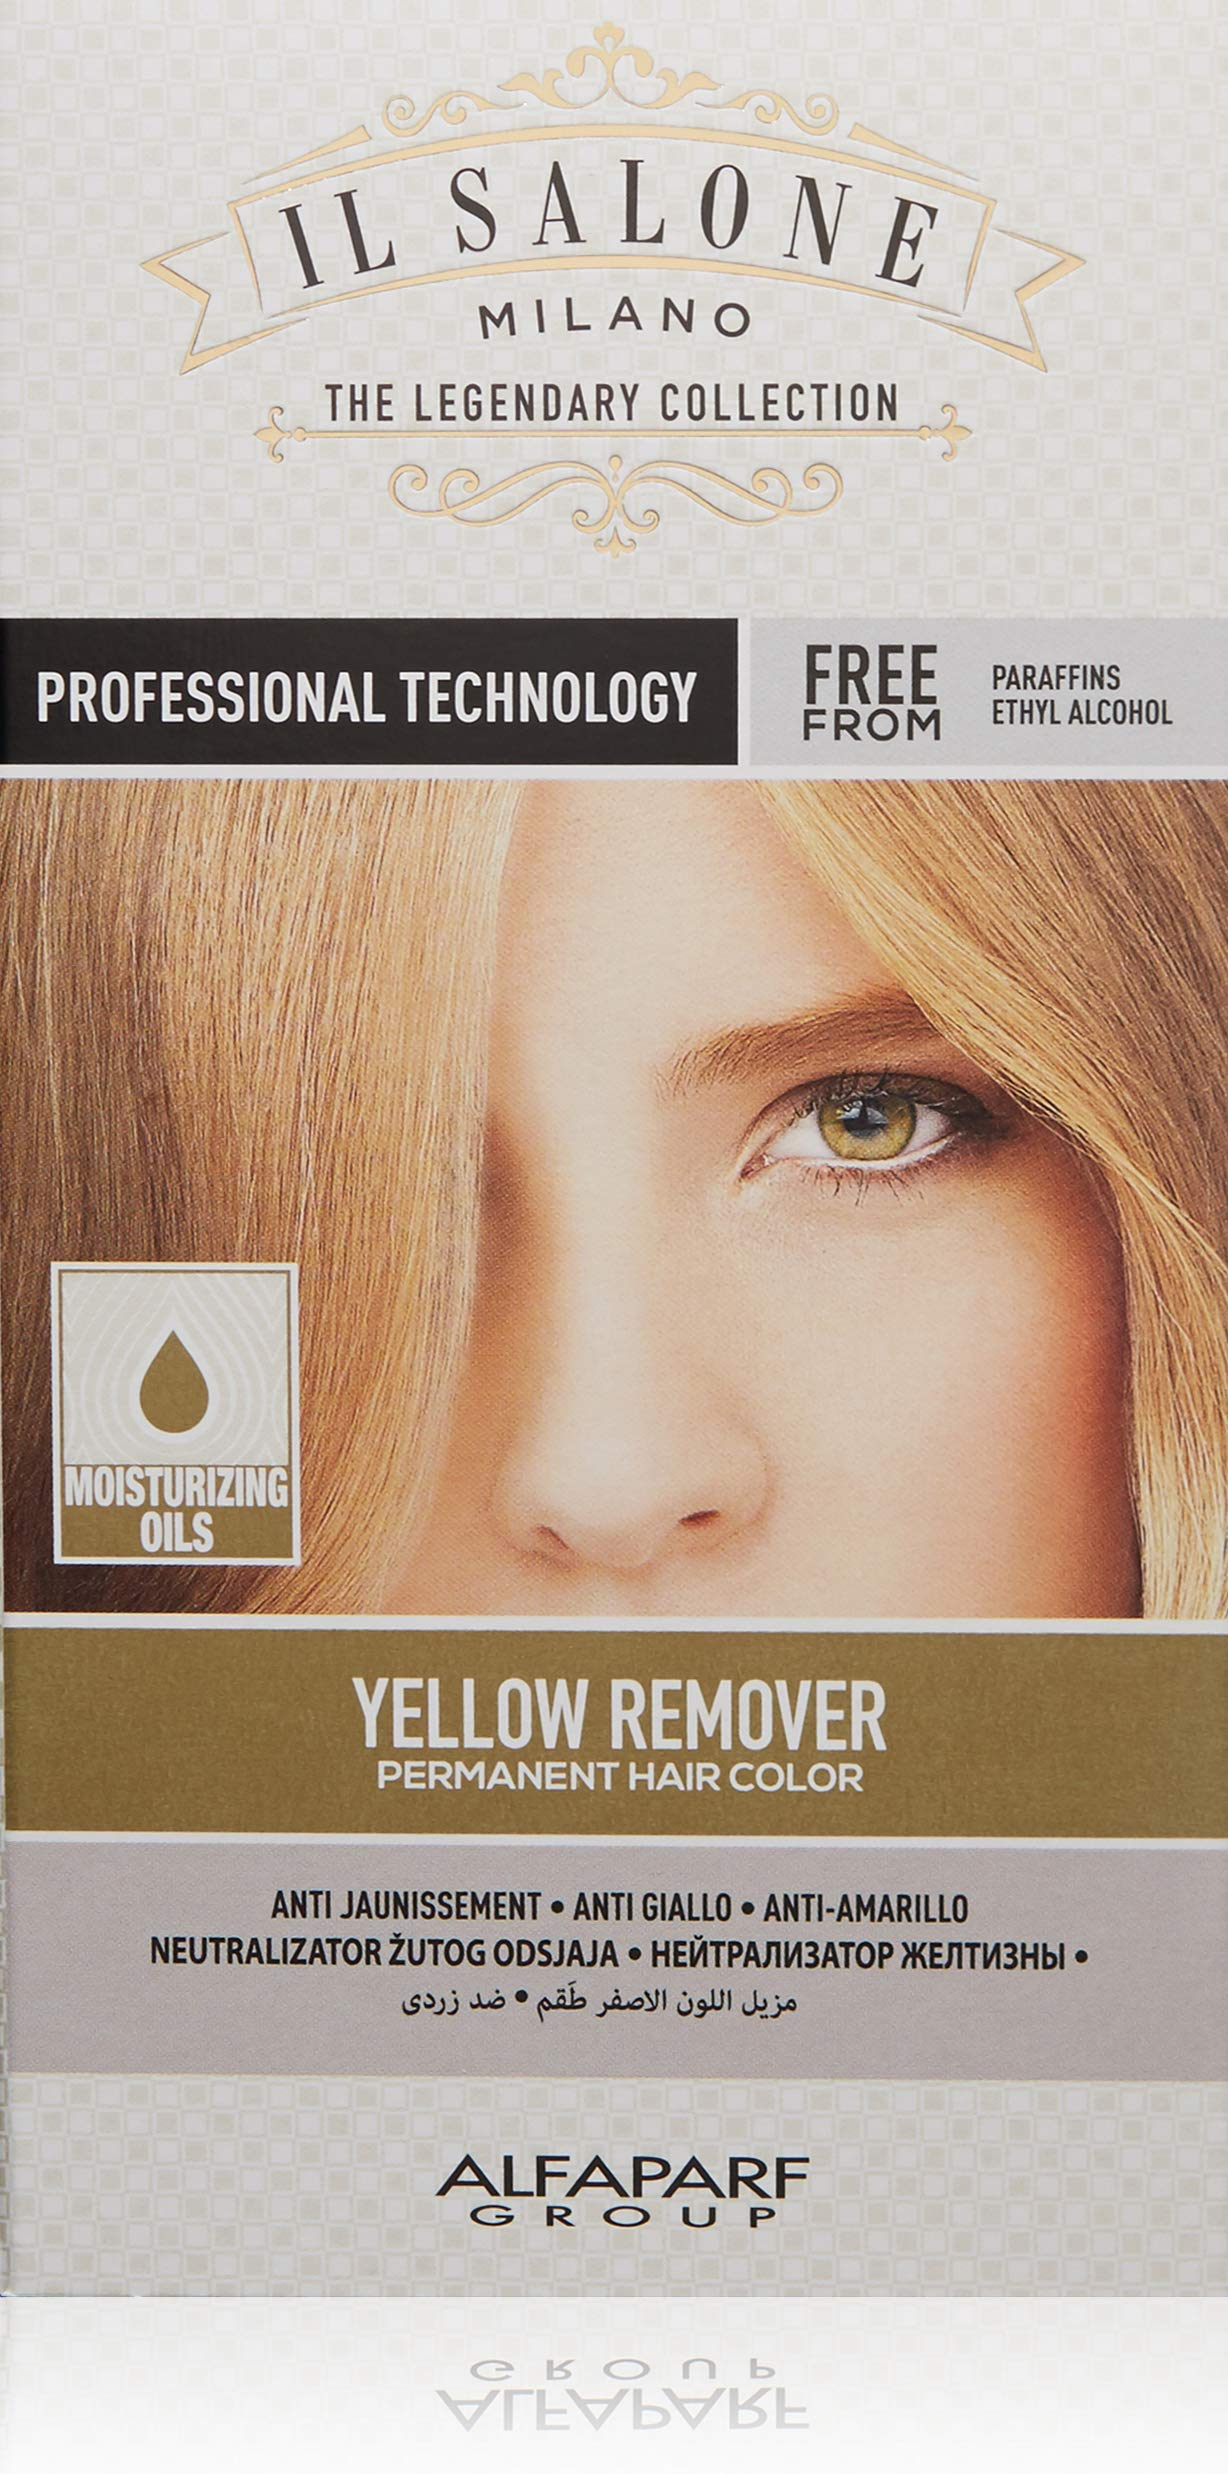 Il Salone Milano Professional Permanent Hair Color Kit - Yellow Remover - Reduce Brassiness - Paraffin Free, Ethyl Alcohol Free - Moisturizing Oils - Banish Brassy Hair